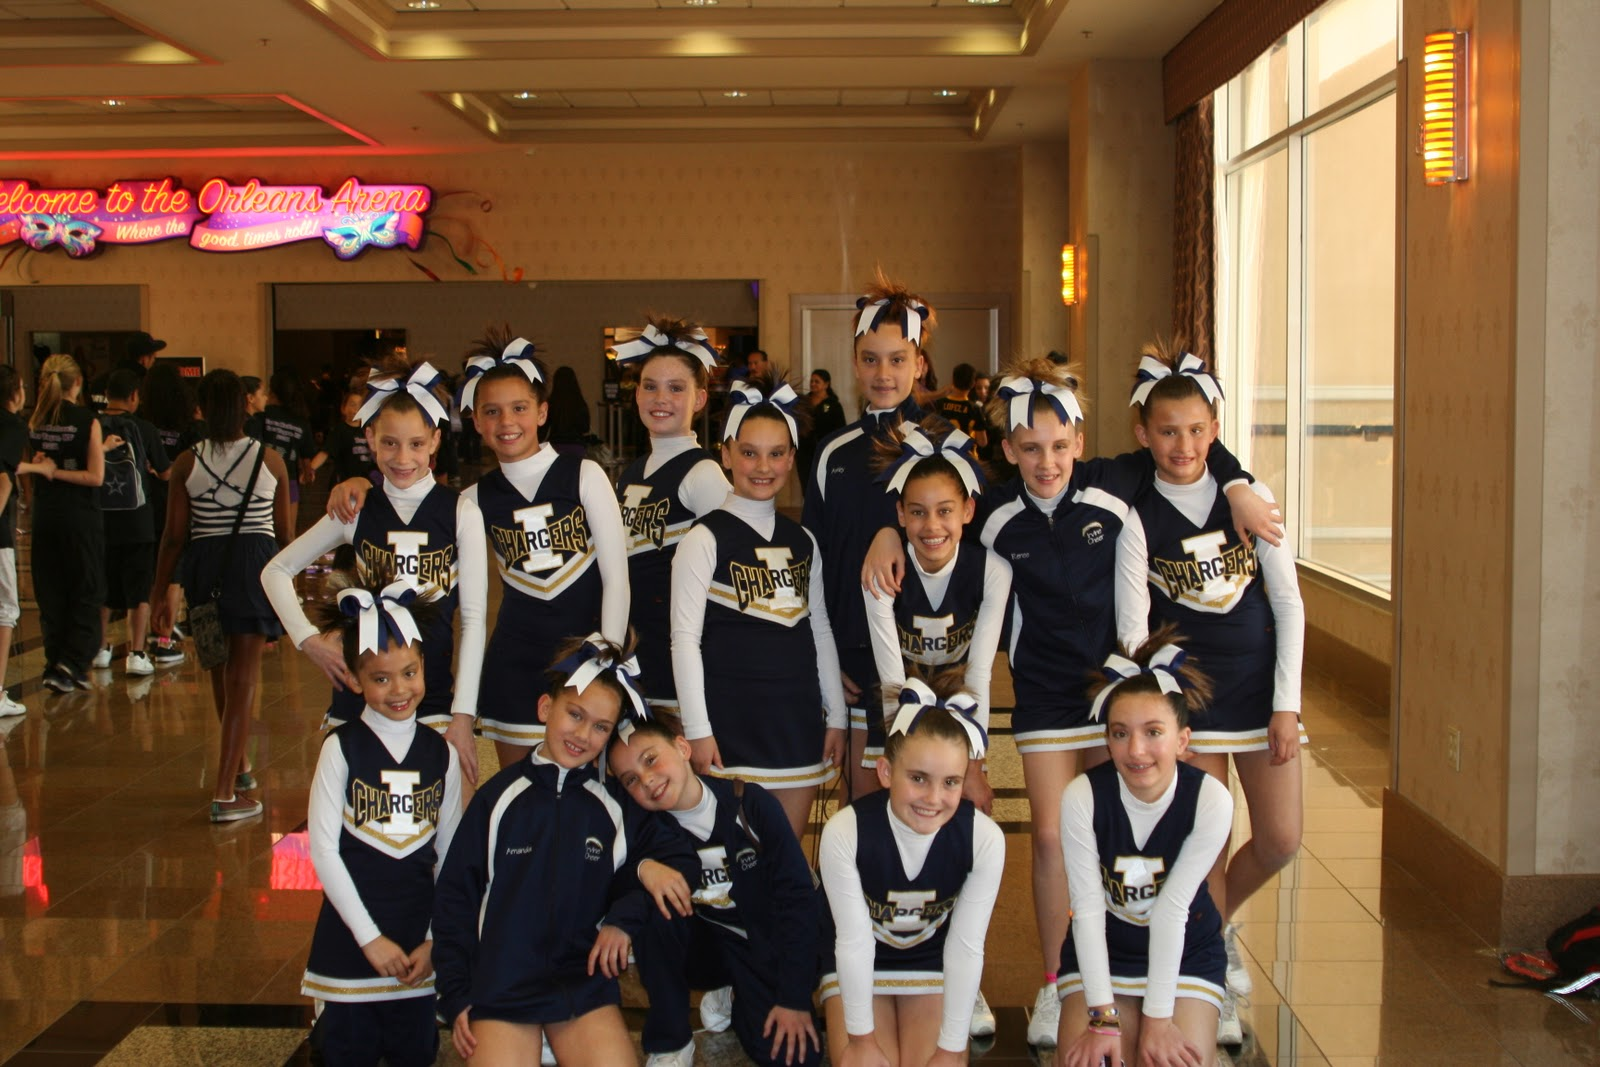 Pee Wee Cheer - City of Celina Parks and